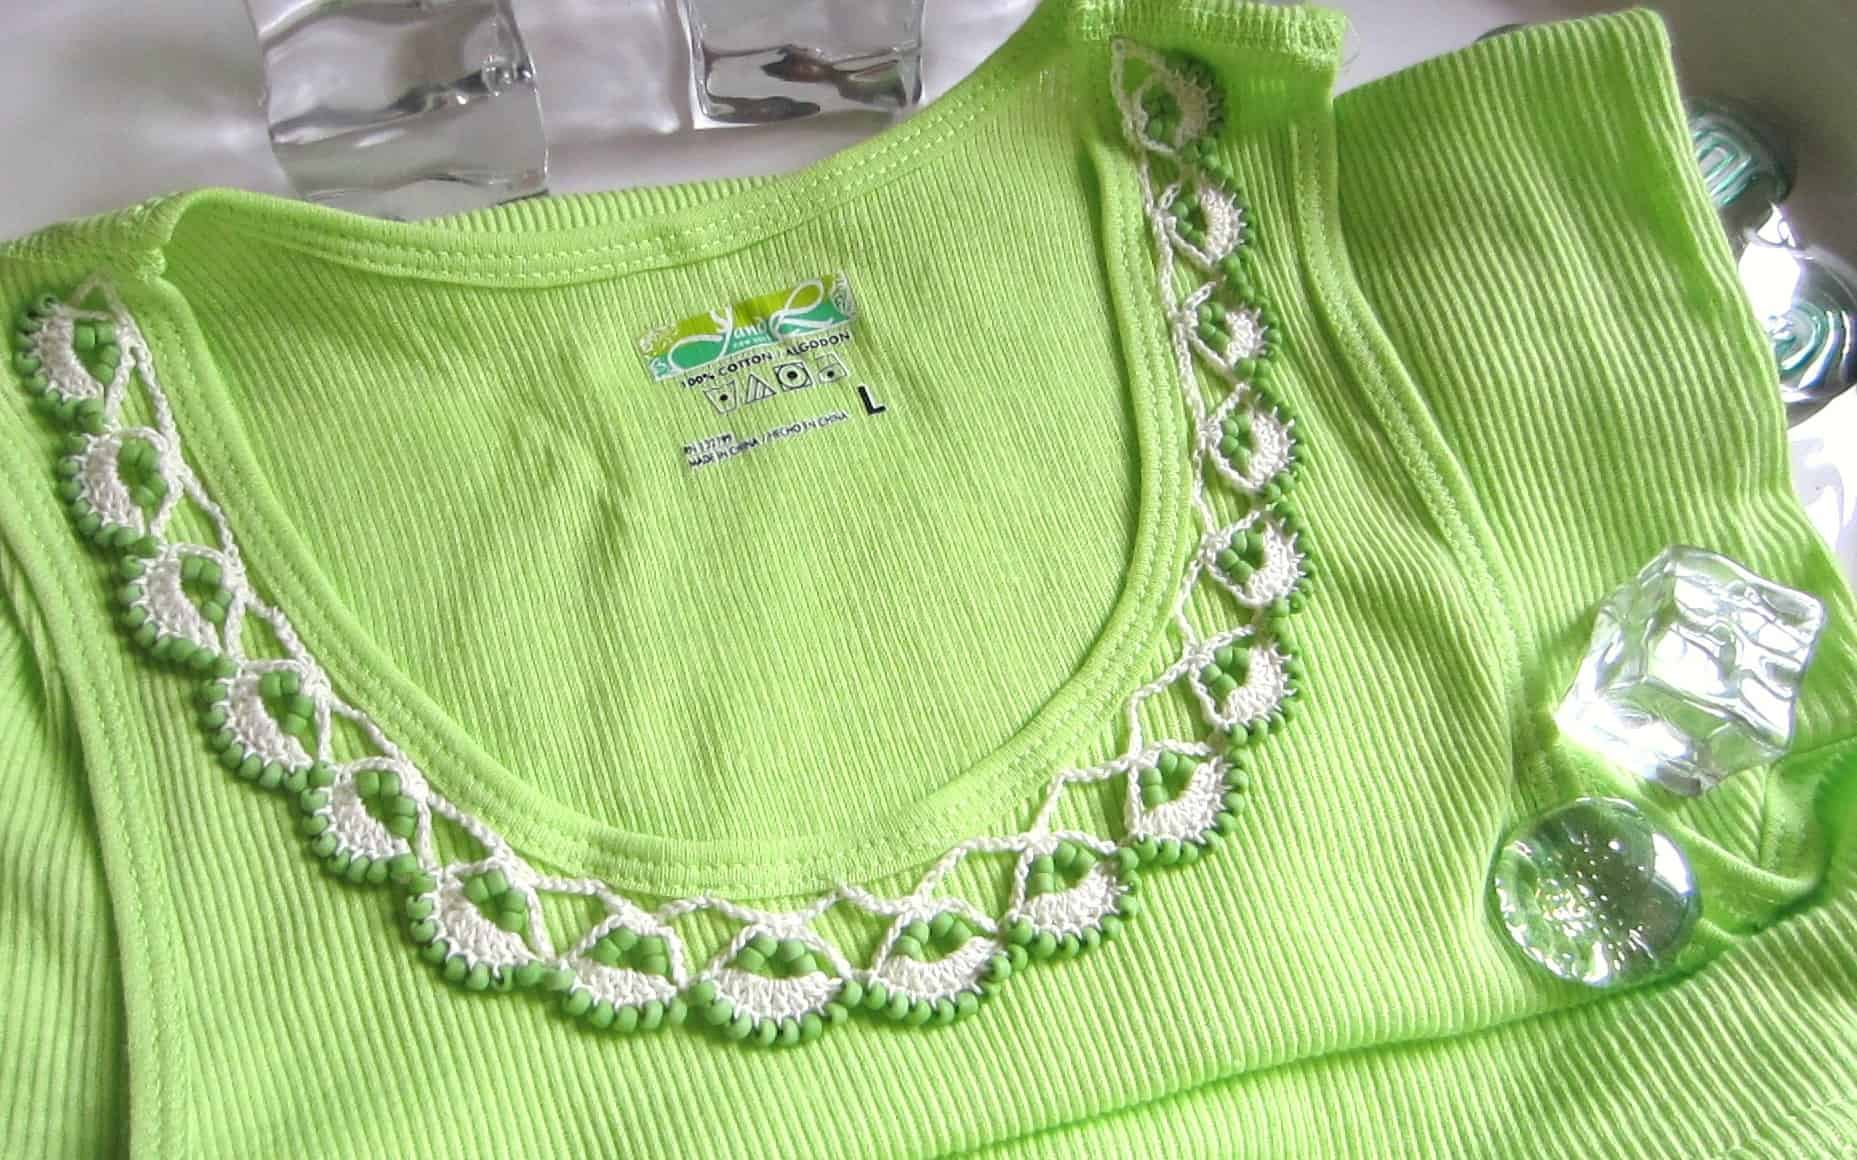 Beaded lace crochet shirt edging